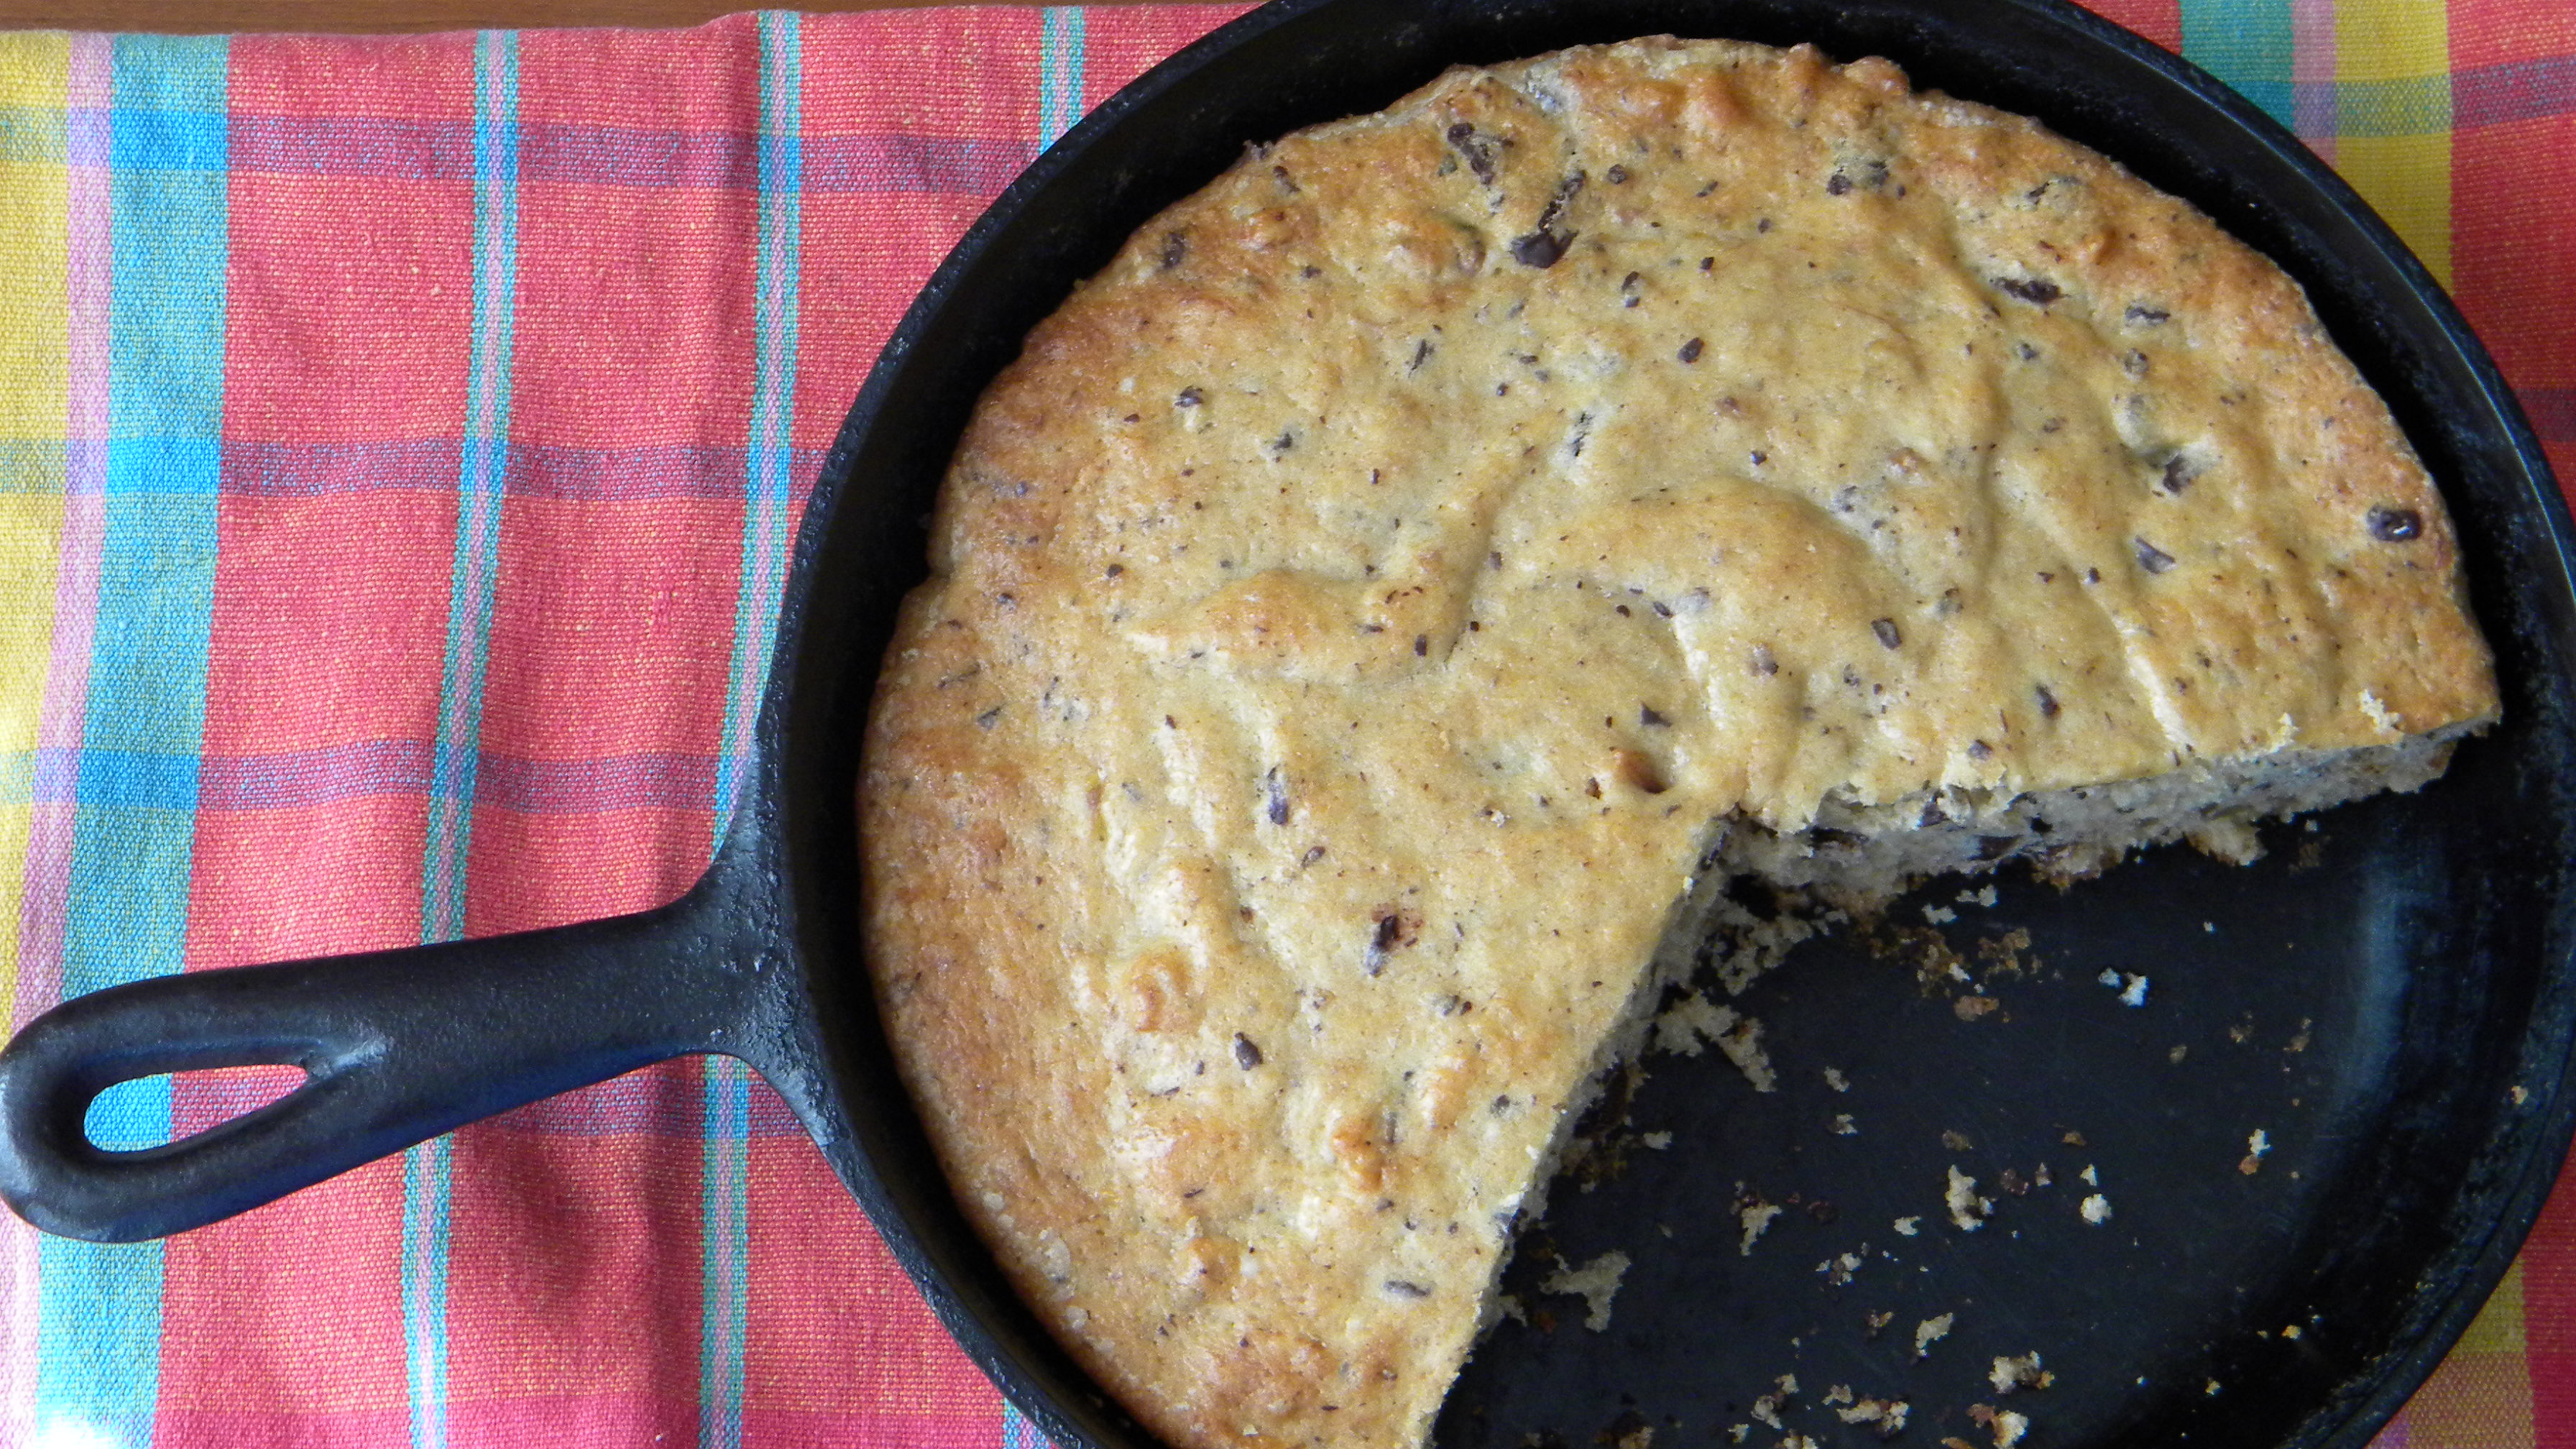 Skillet Banana Cake